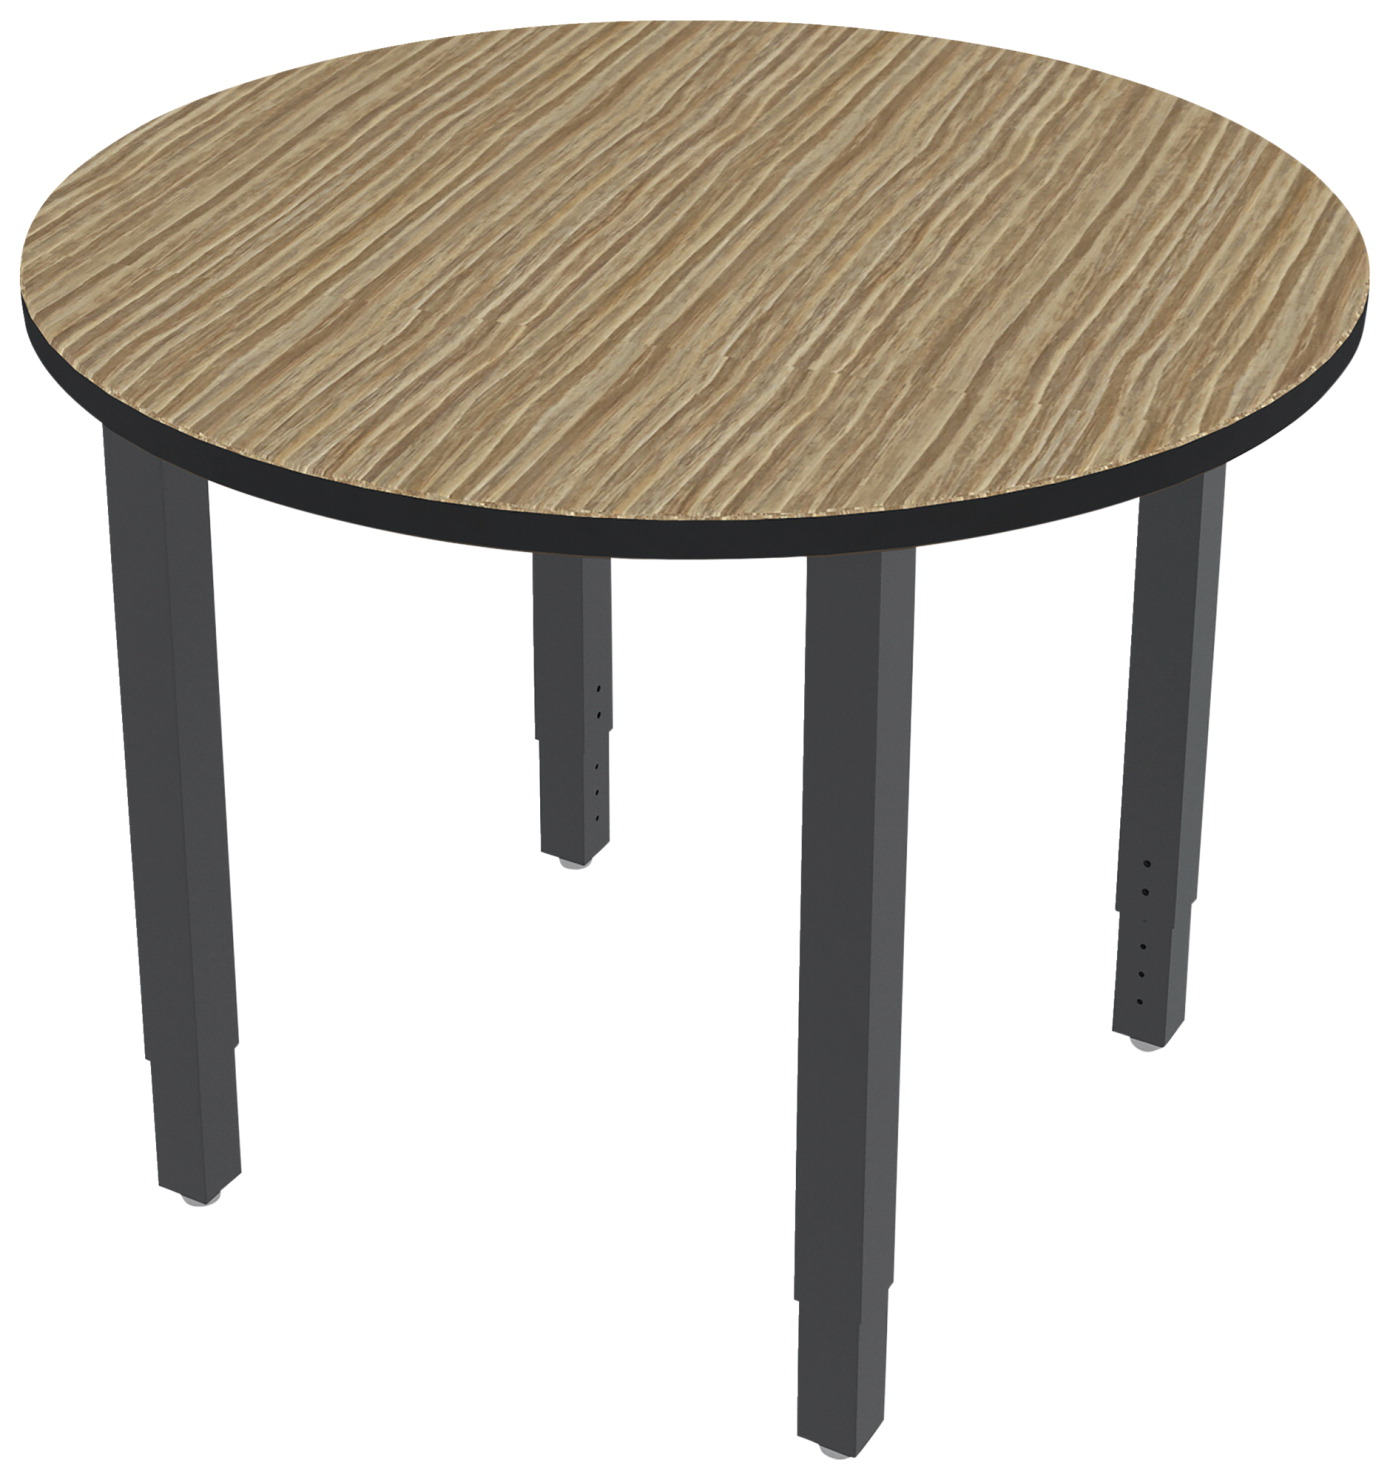 Classroom Select Vigor Table, 48 Inch Round Laminate Top with LockEdge, Various Options